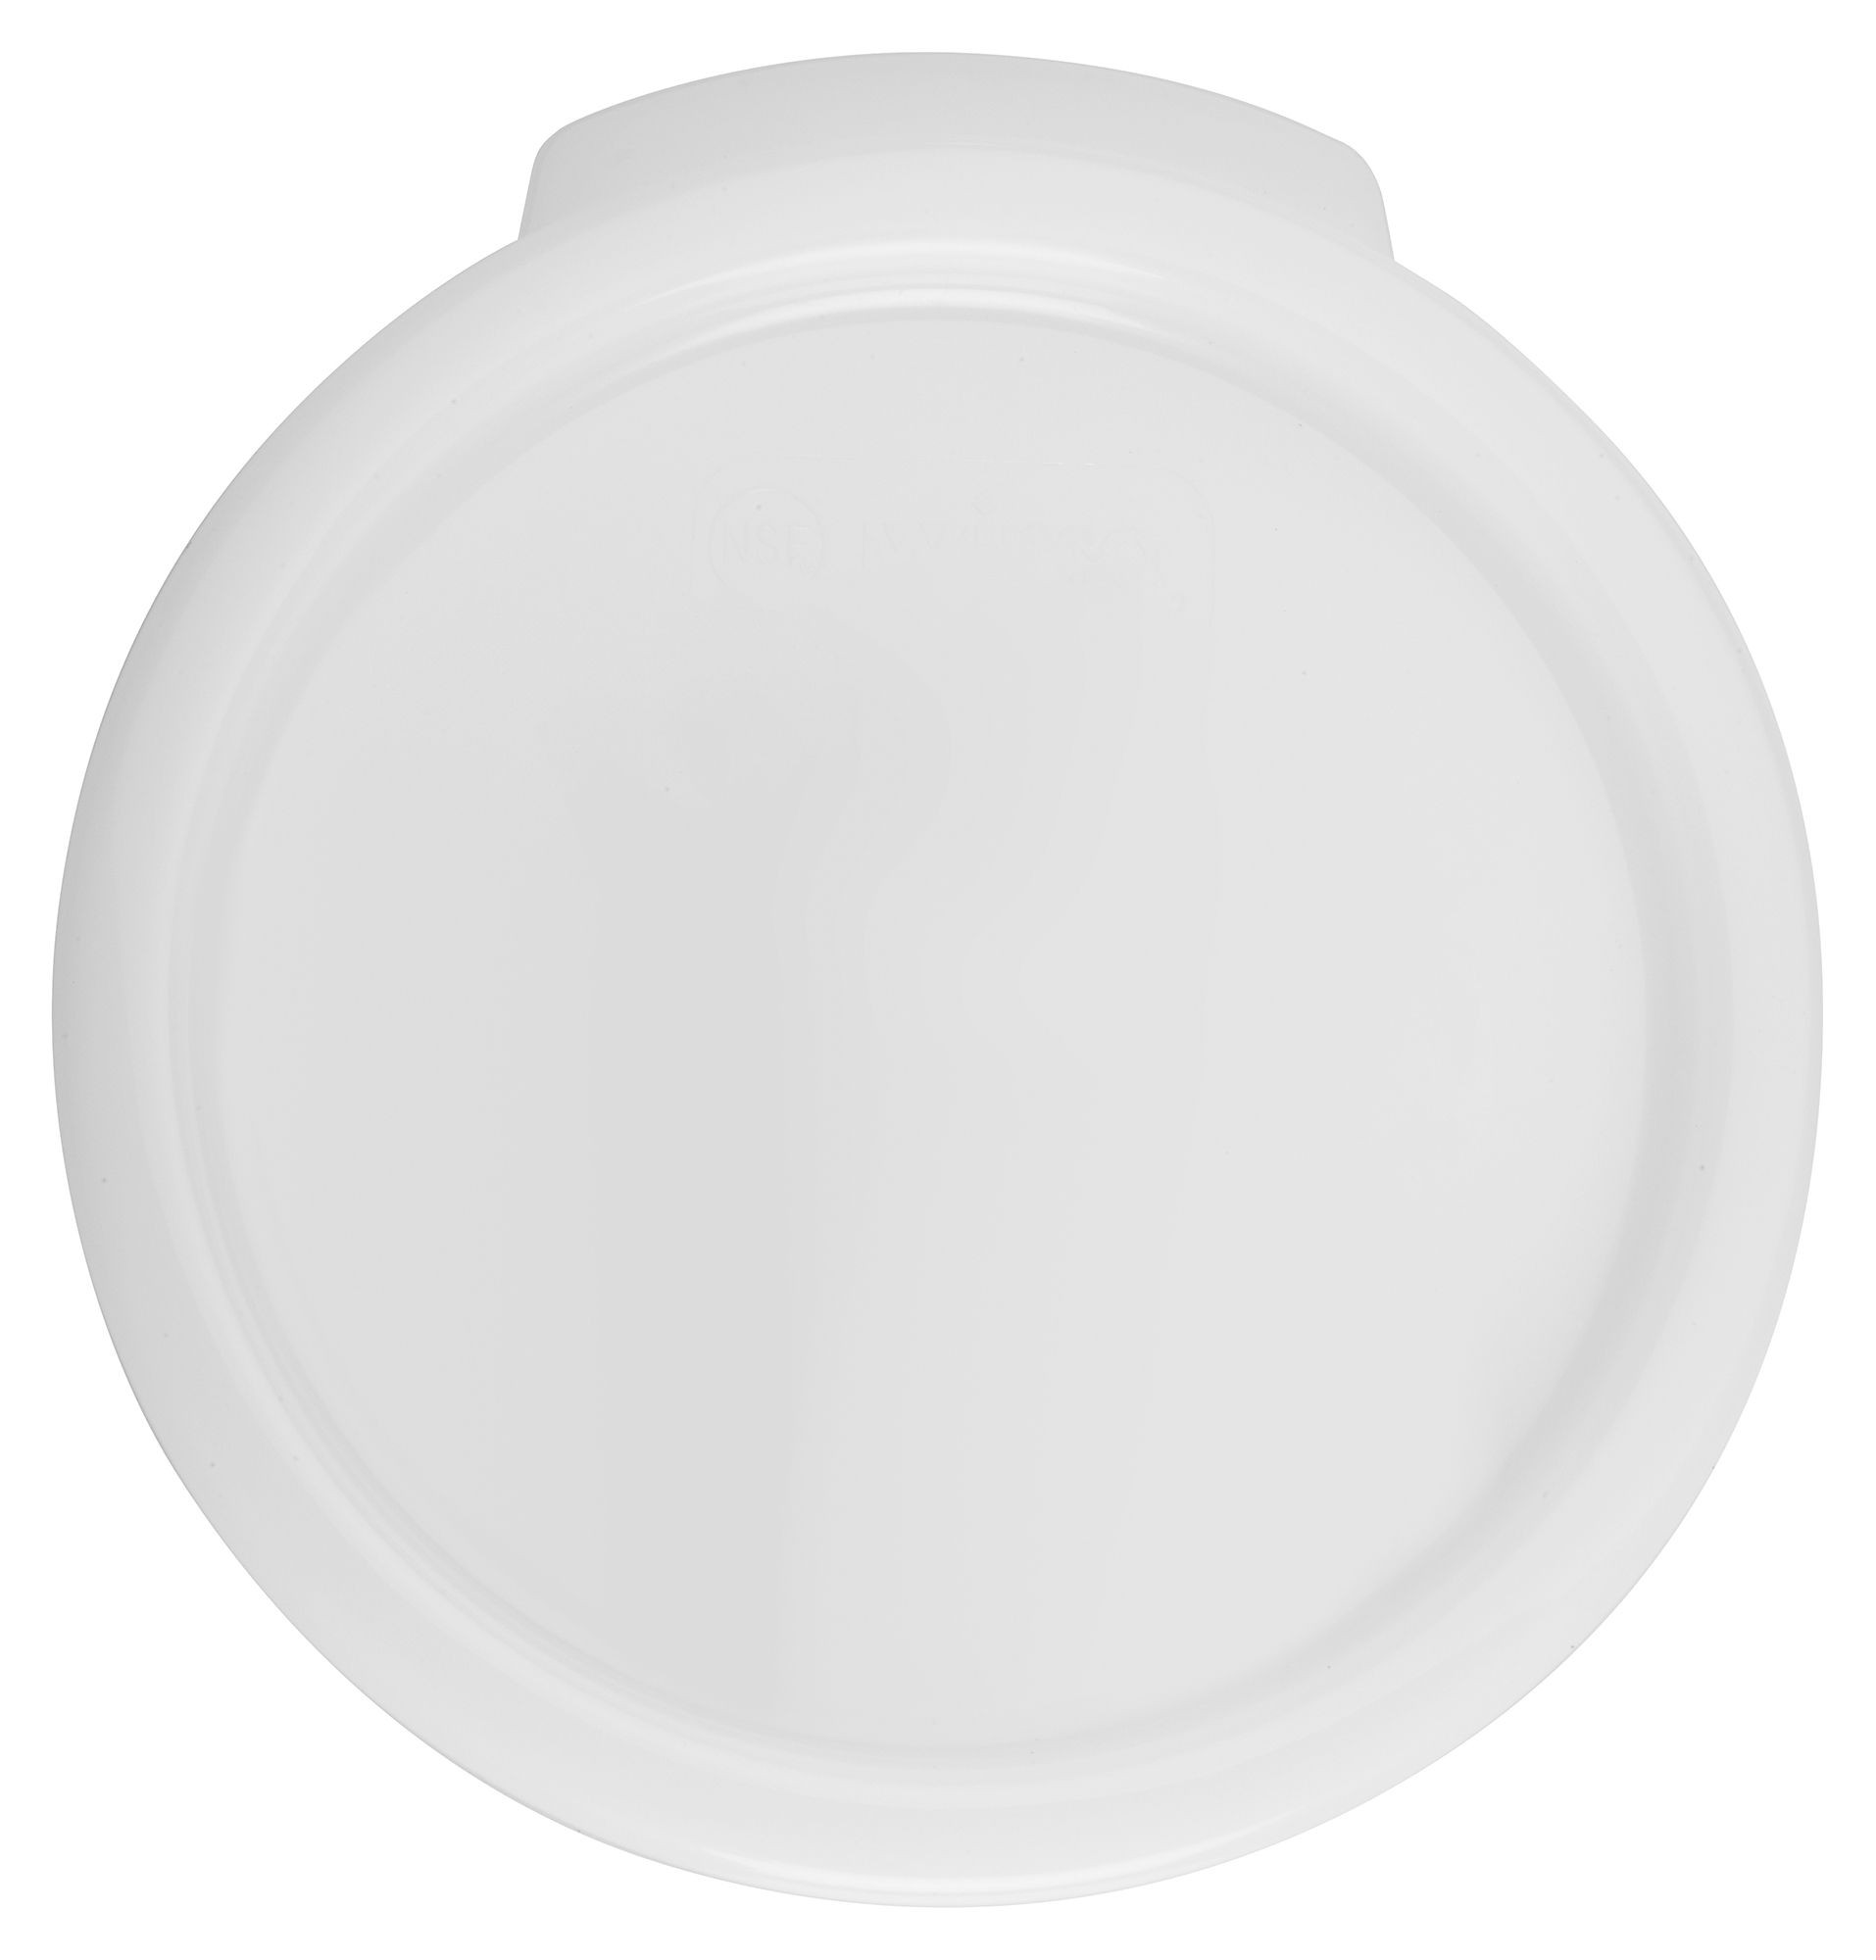 PP Round Cover, Fits 1Qt